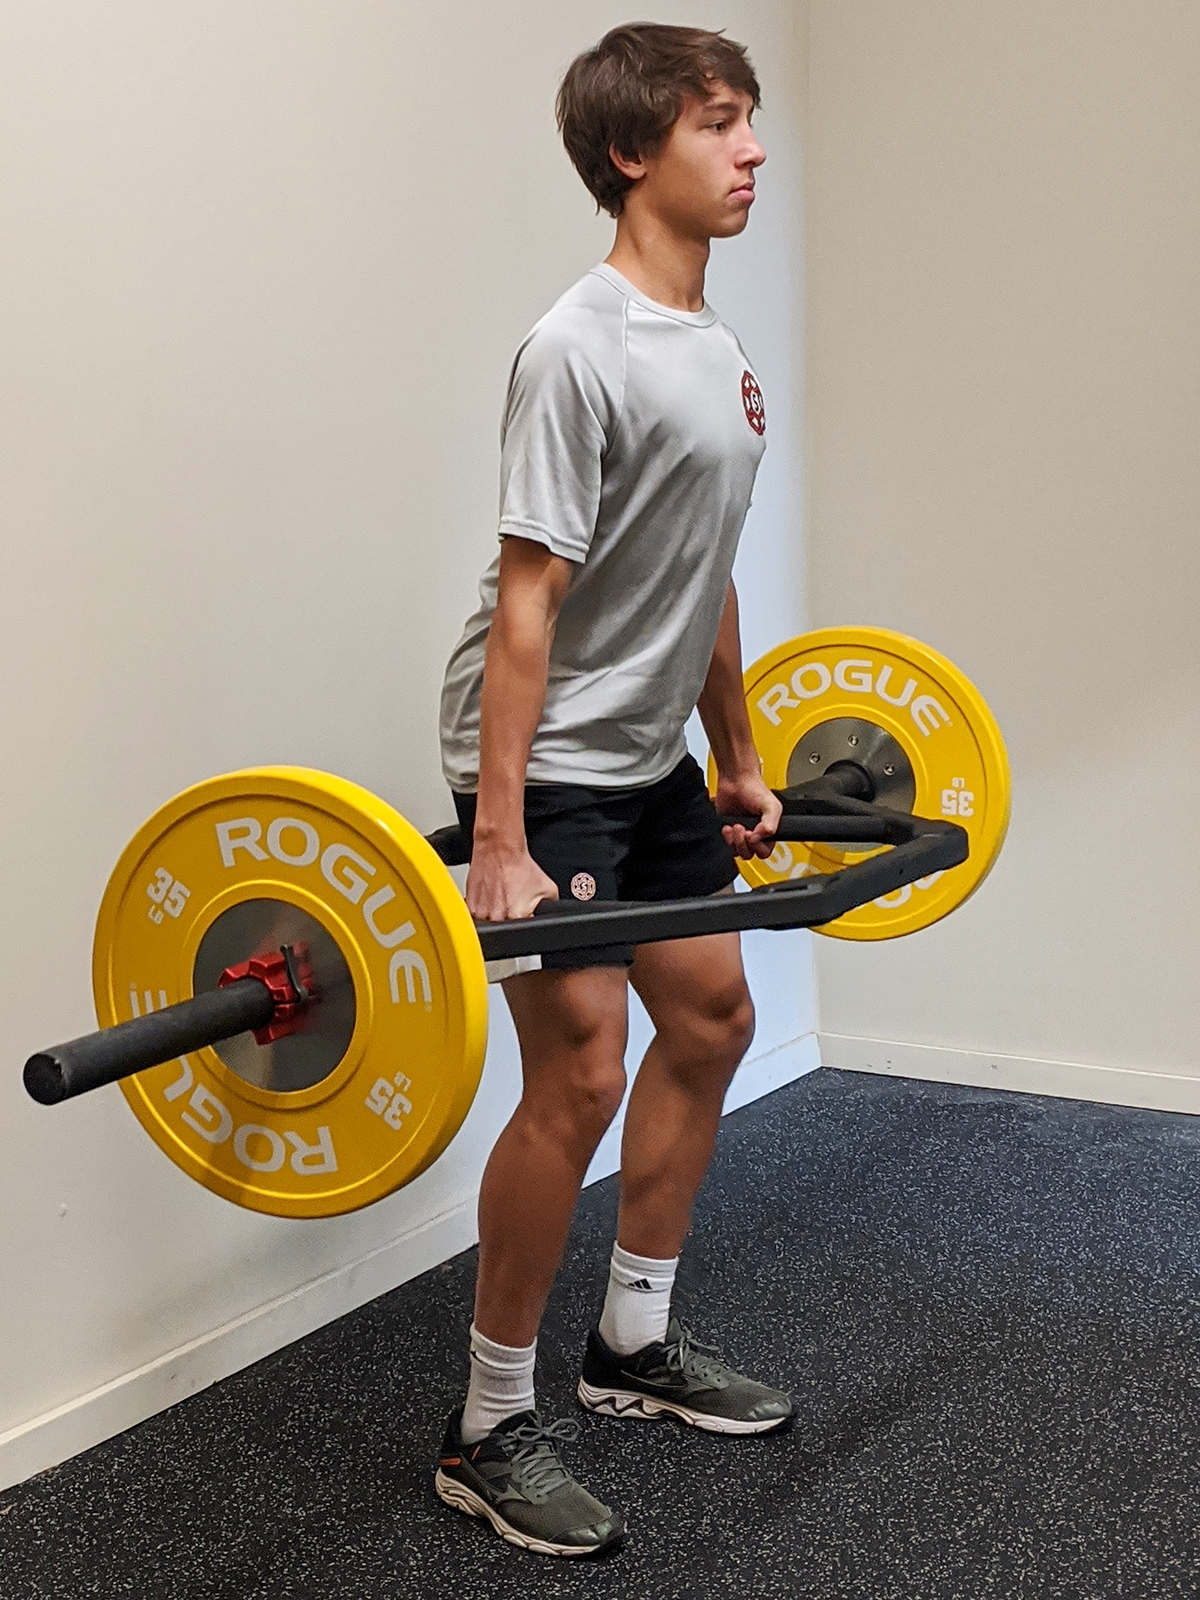 Young athlete practicing deadlift